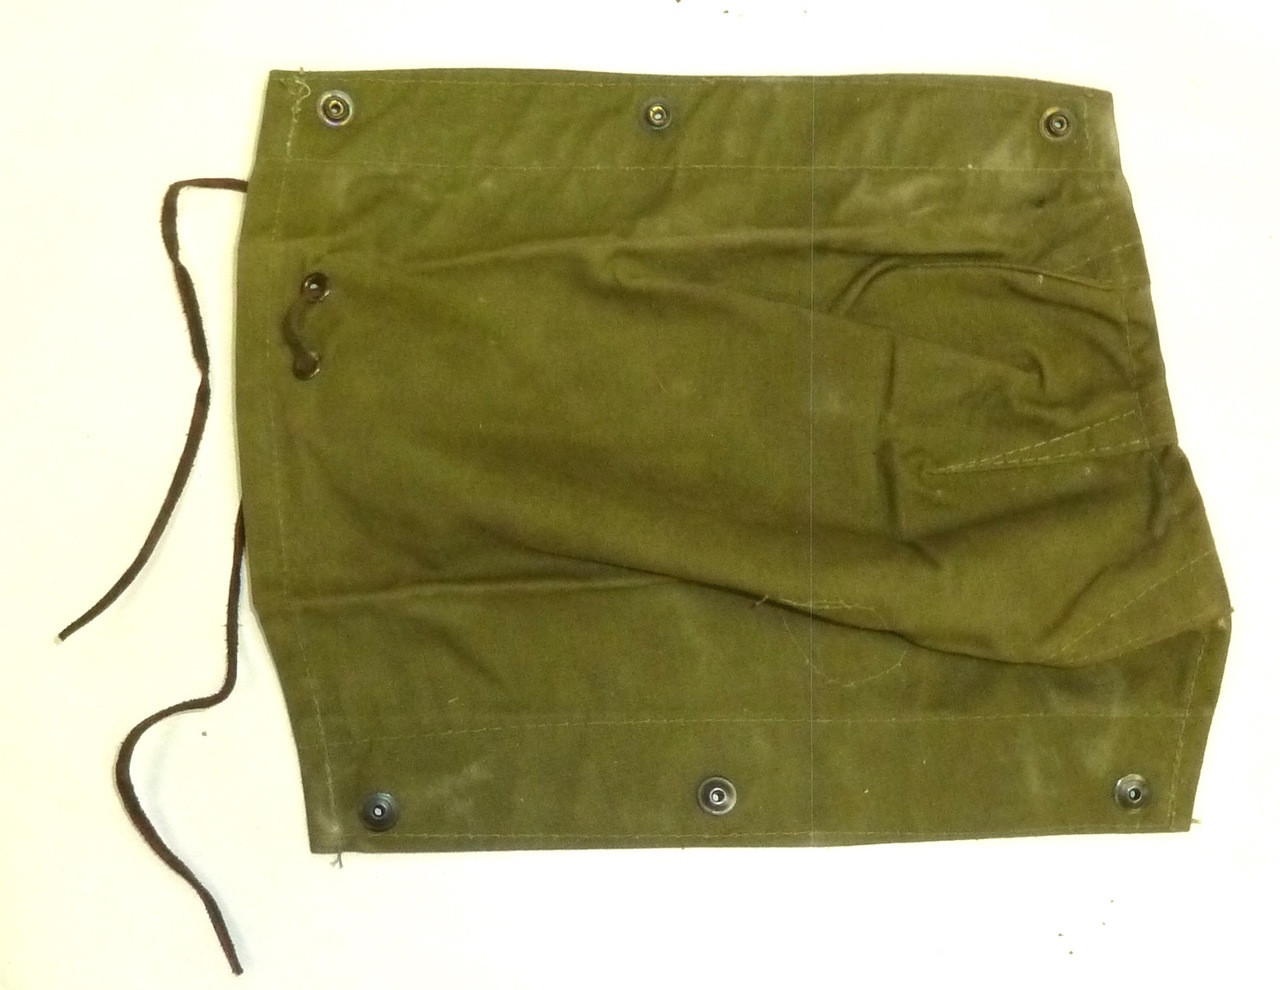 SMLE Action Cover, Green, WW2, British? (Pictured) 03